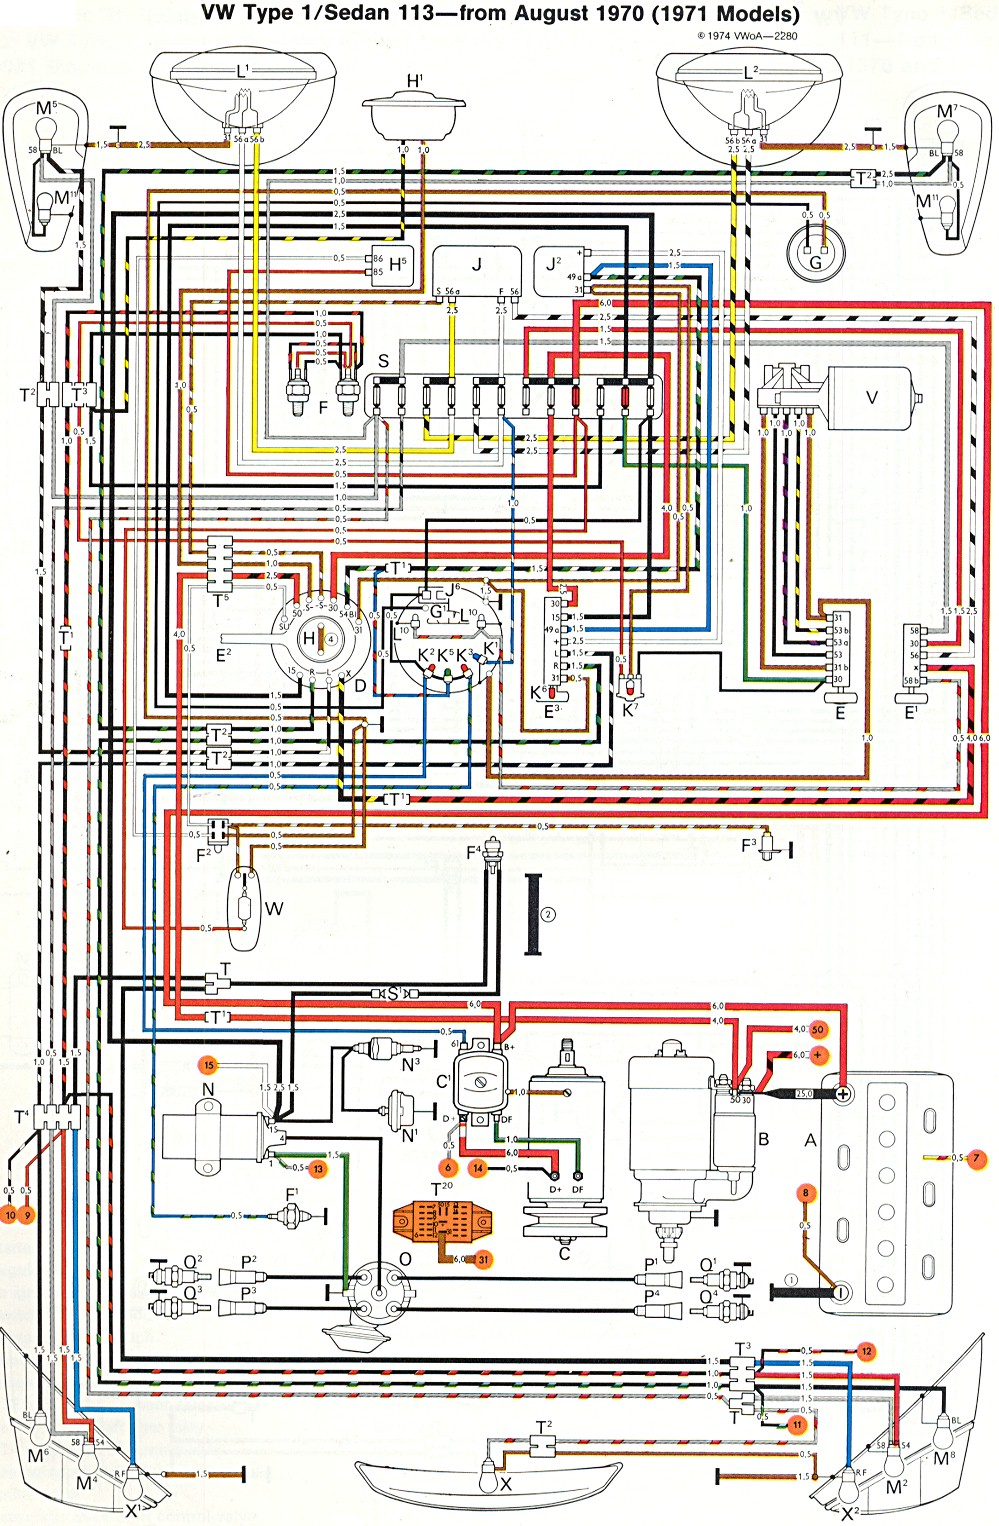 bug_super_71 1971 super beetle wiring diagram thegoldenbug com 1974 super beetle wiring diagram at soozxer.org